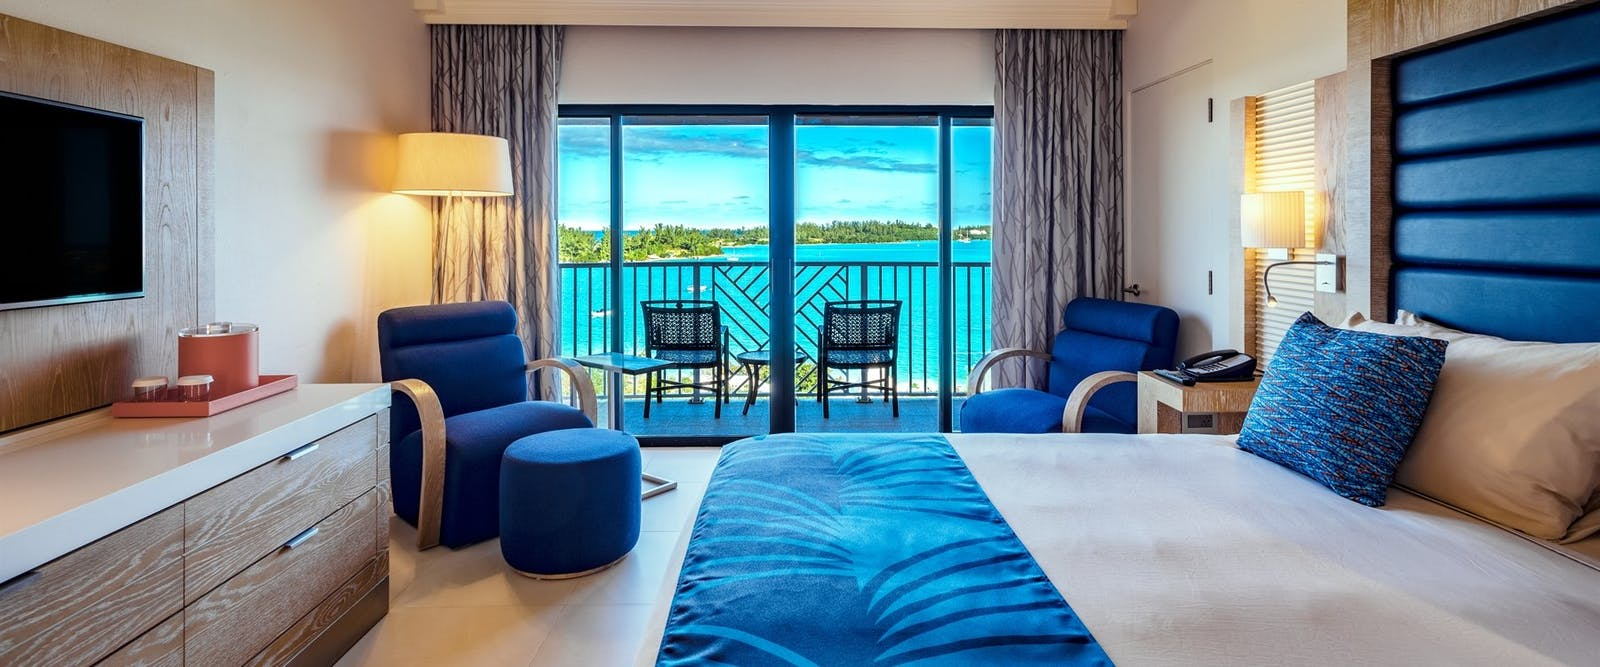 Accommodation at Grotto Bay, Bermuda